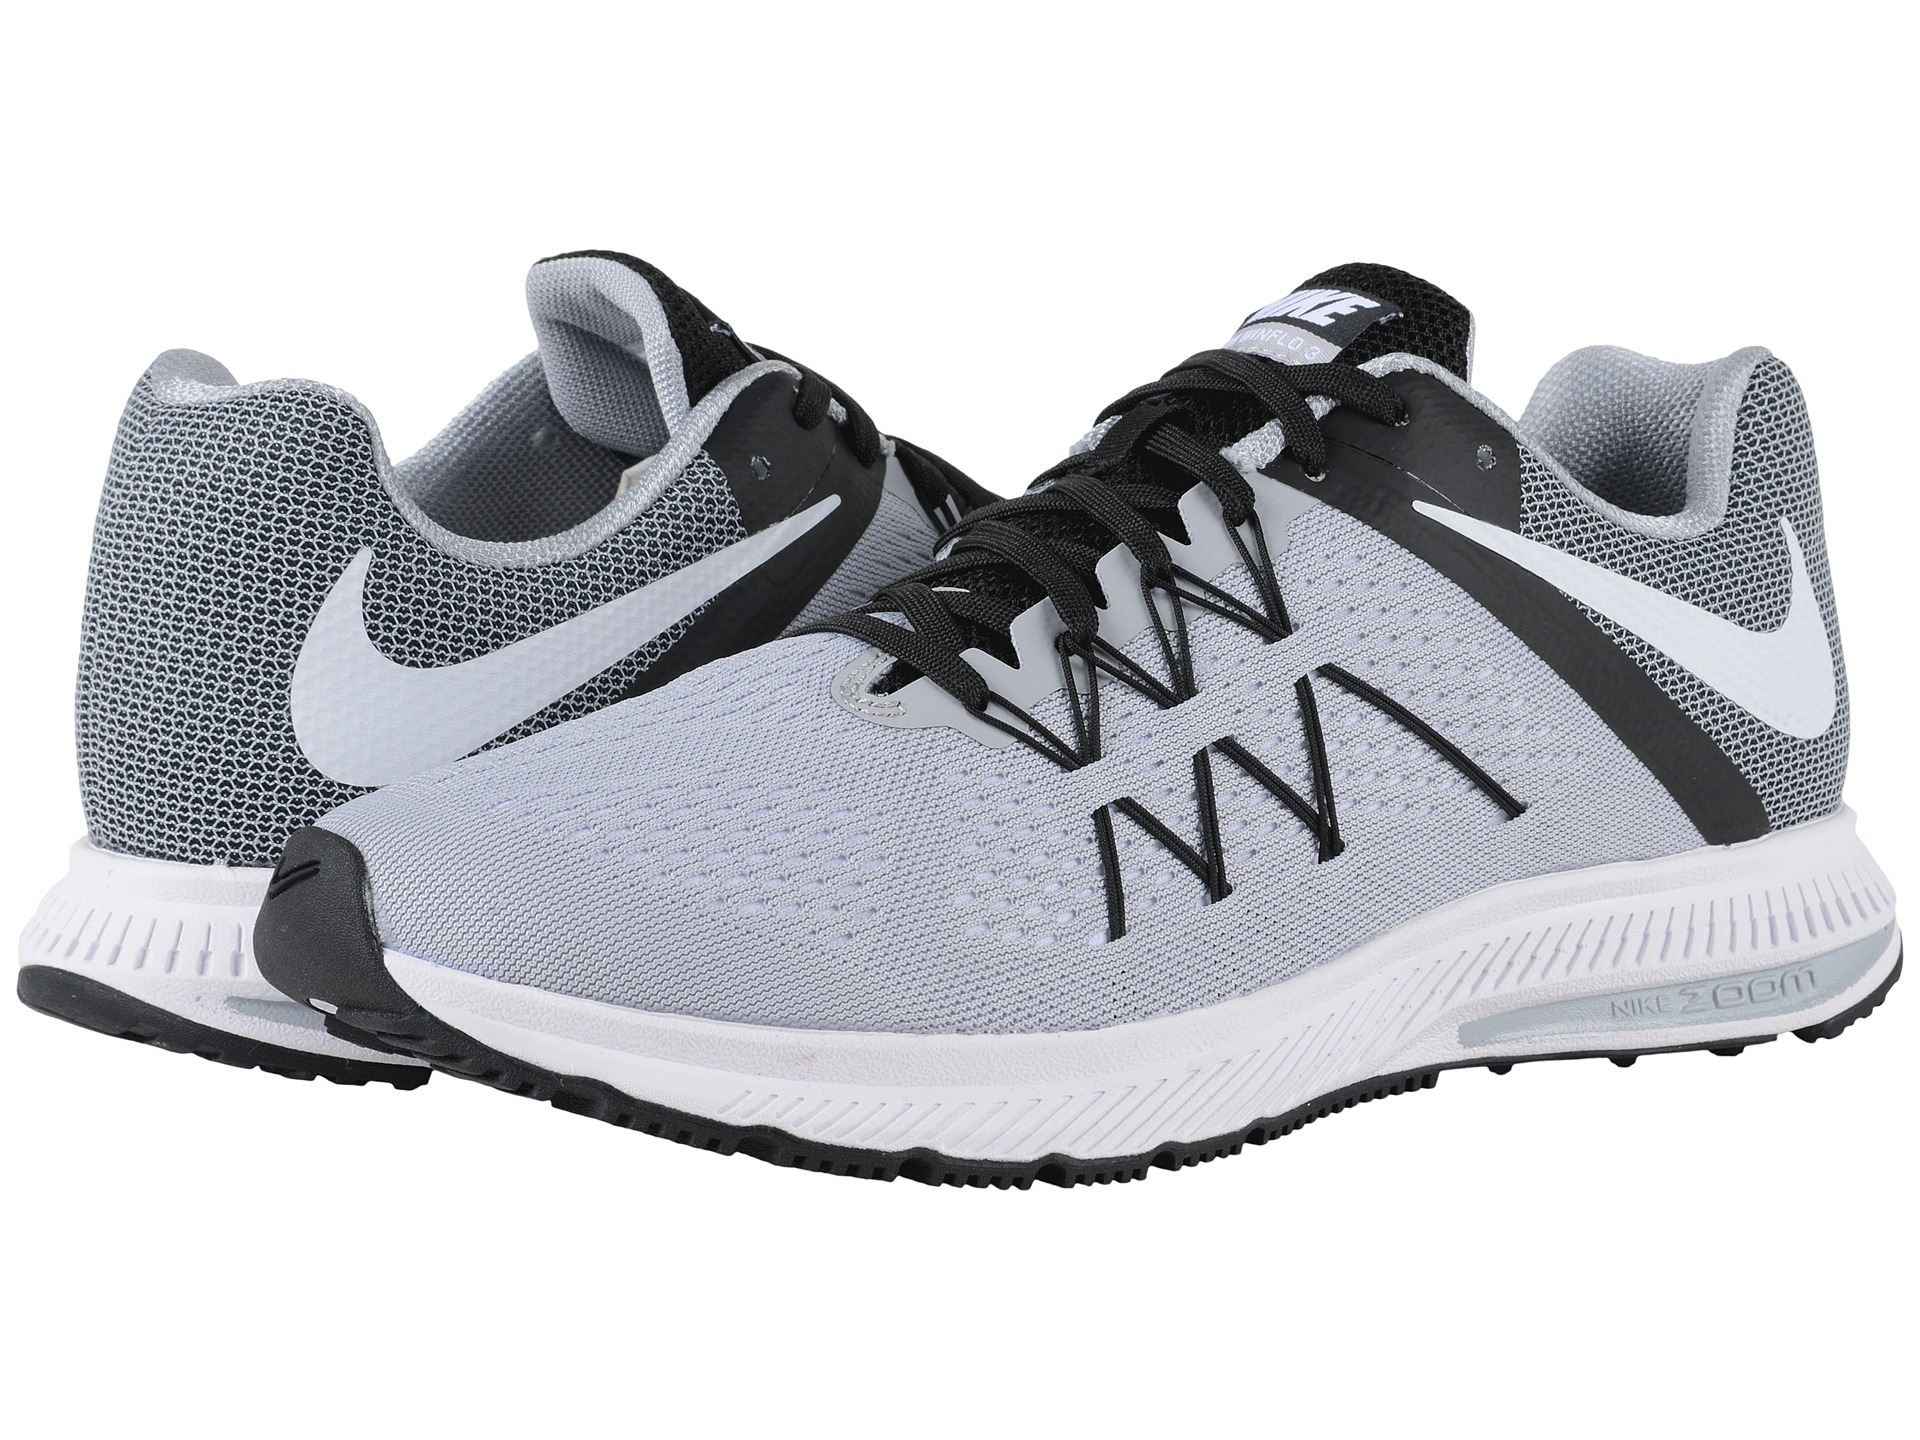 finest selection 66255 a8917 best price lyst nike zoom winflo 3 in gray for men d7228 d05d2